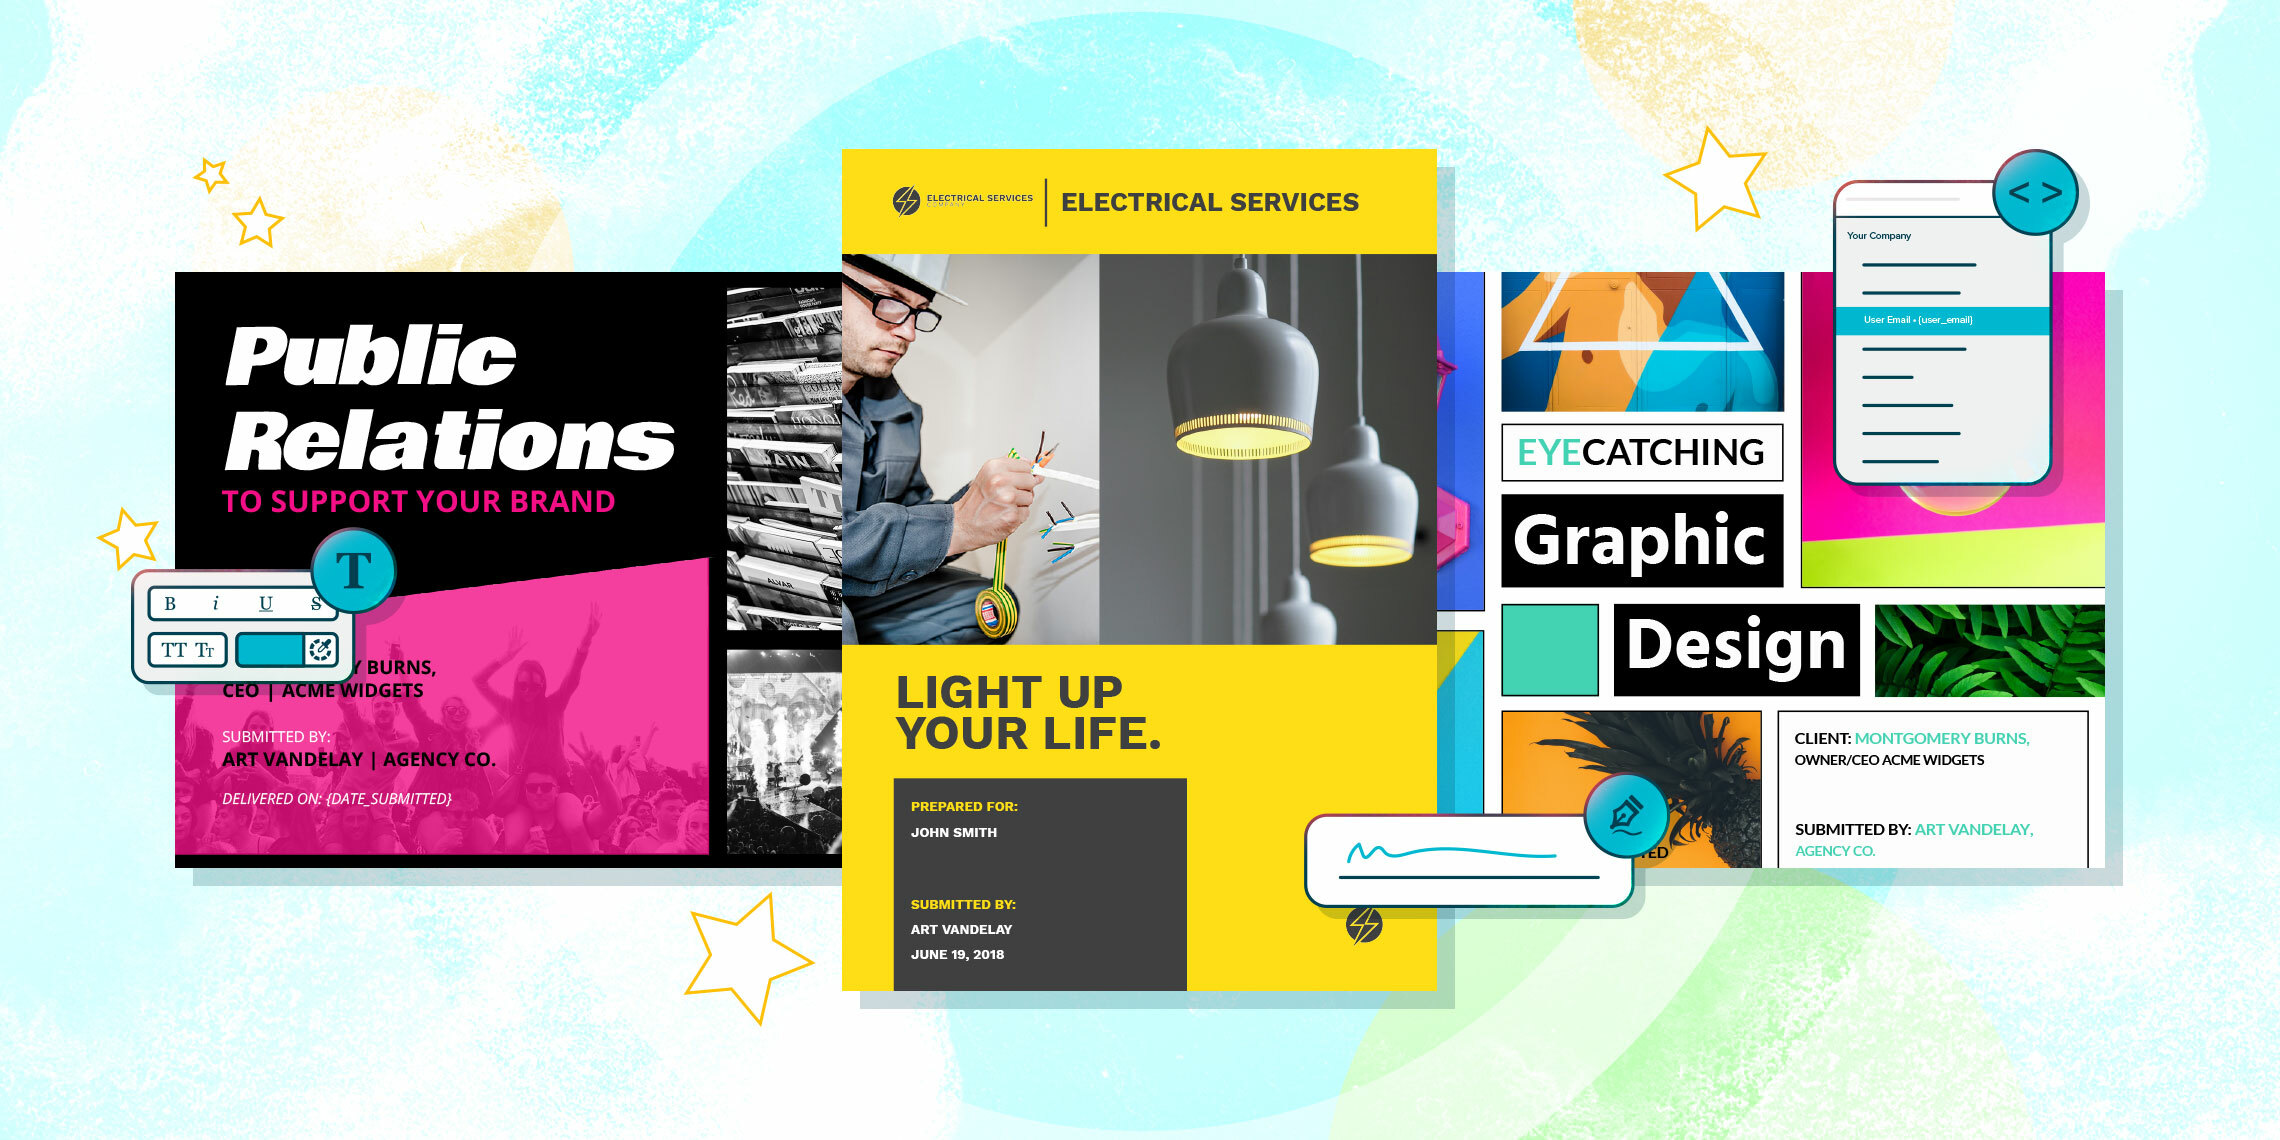 business proposal templates for public relations, interior design and graphic design